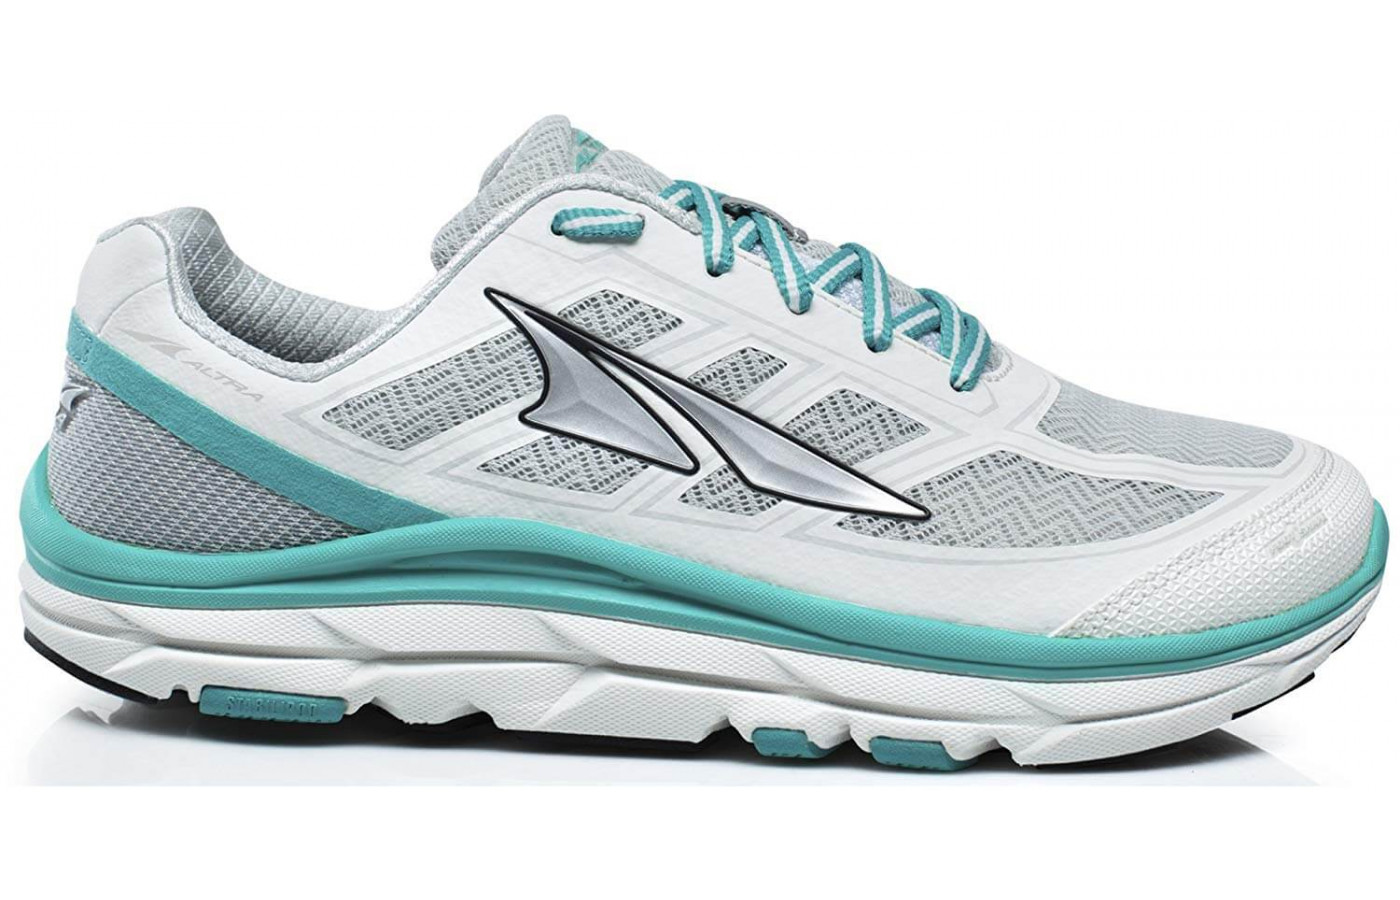 Altra's trademarked Guide Rail and StabiliPod technology work together to provide a stable wear.